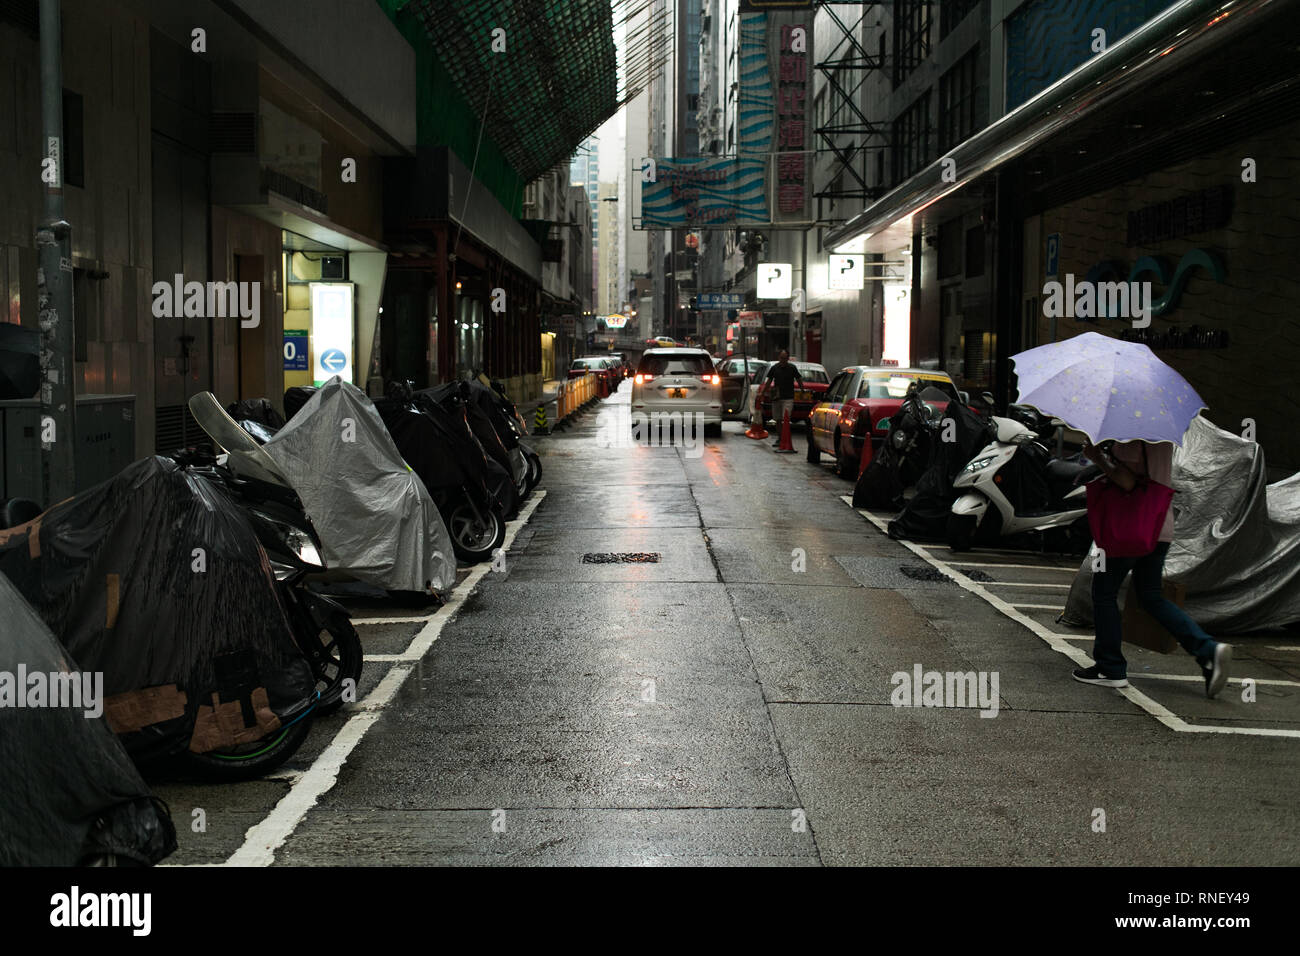 Early morning time. Hong Kong awakens to a new day. - Stock Image